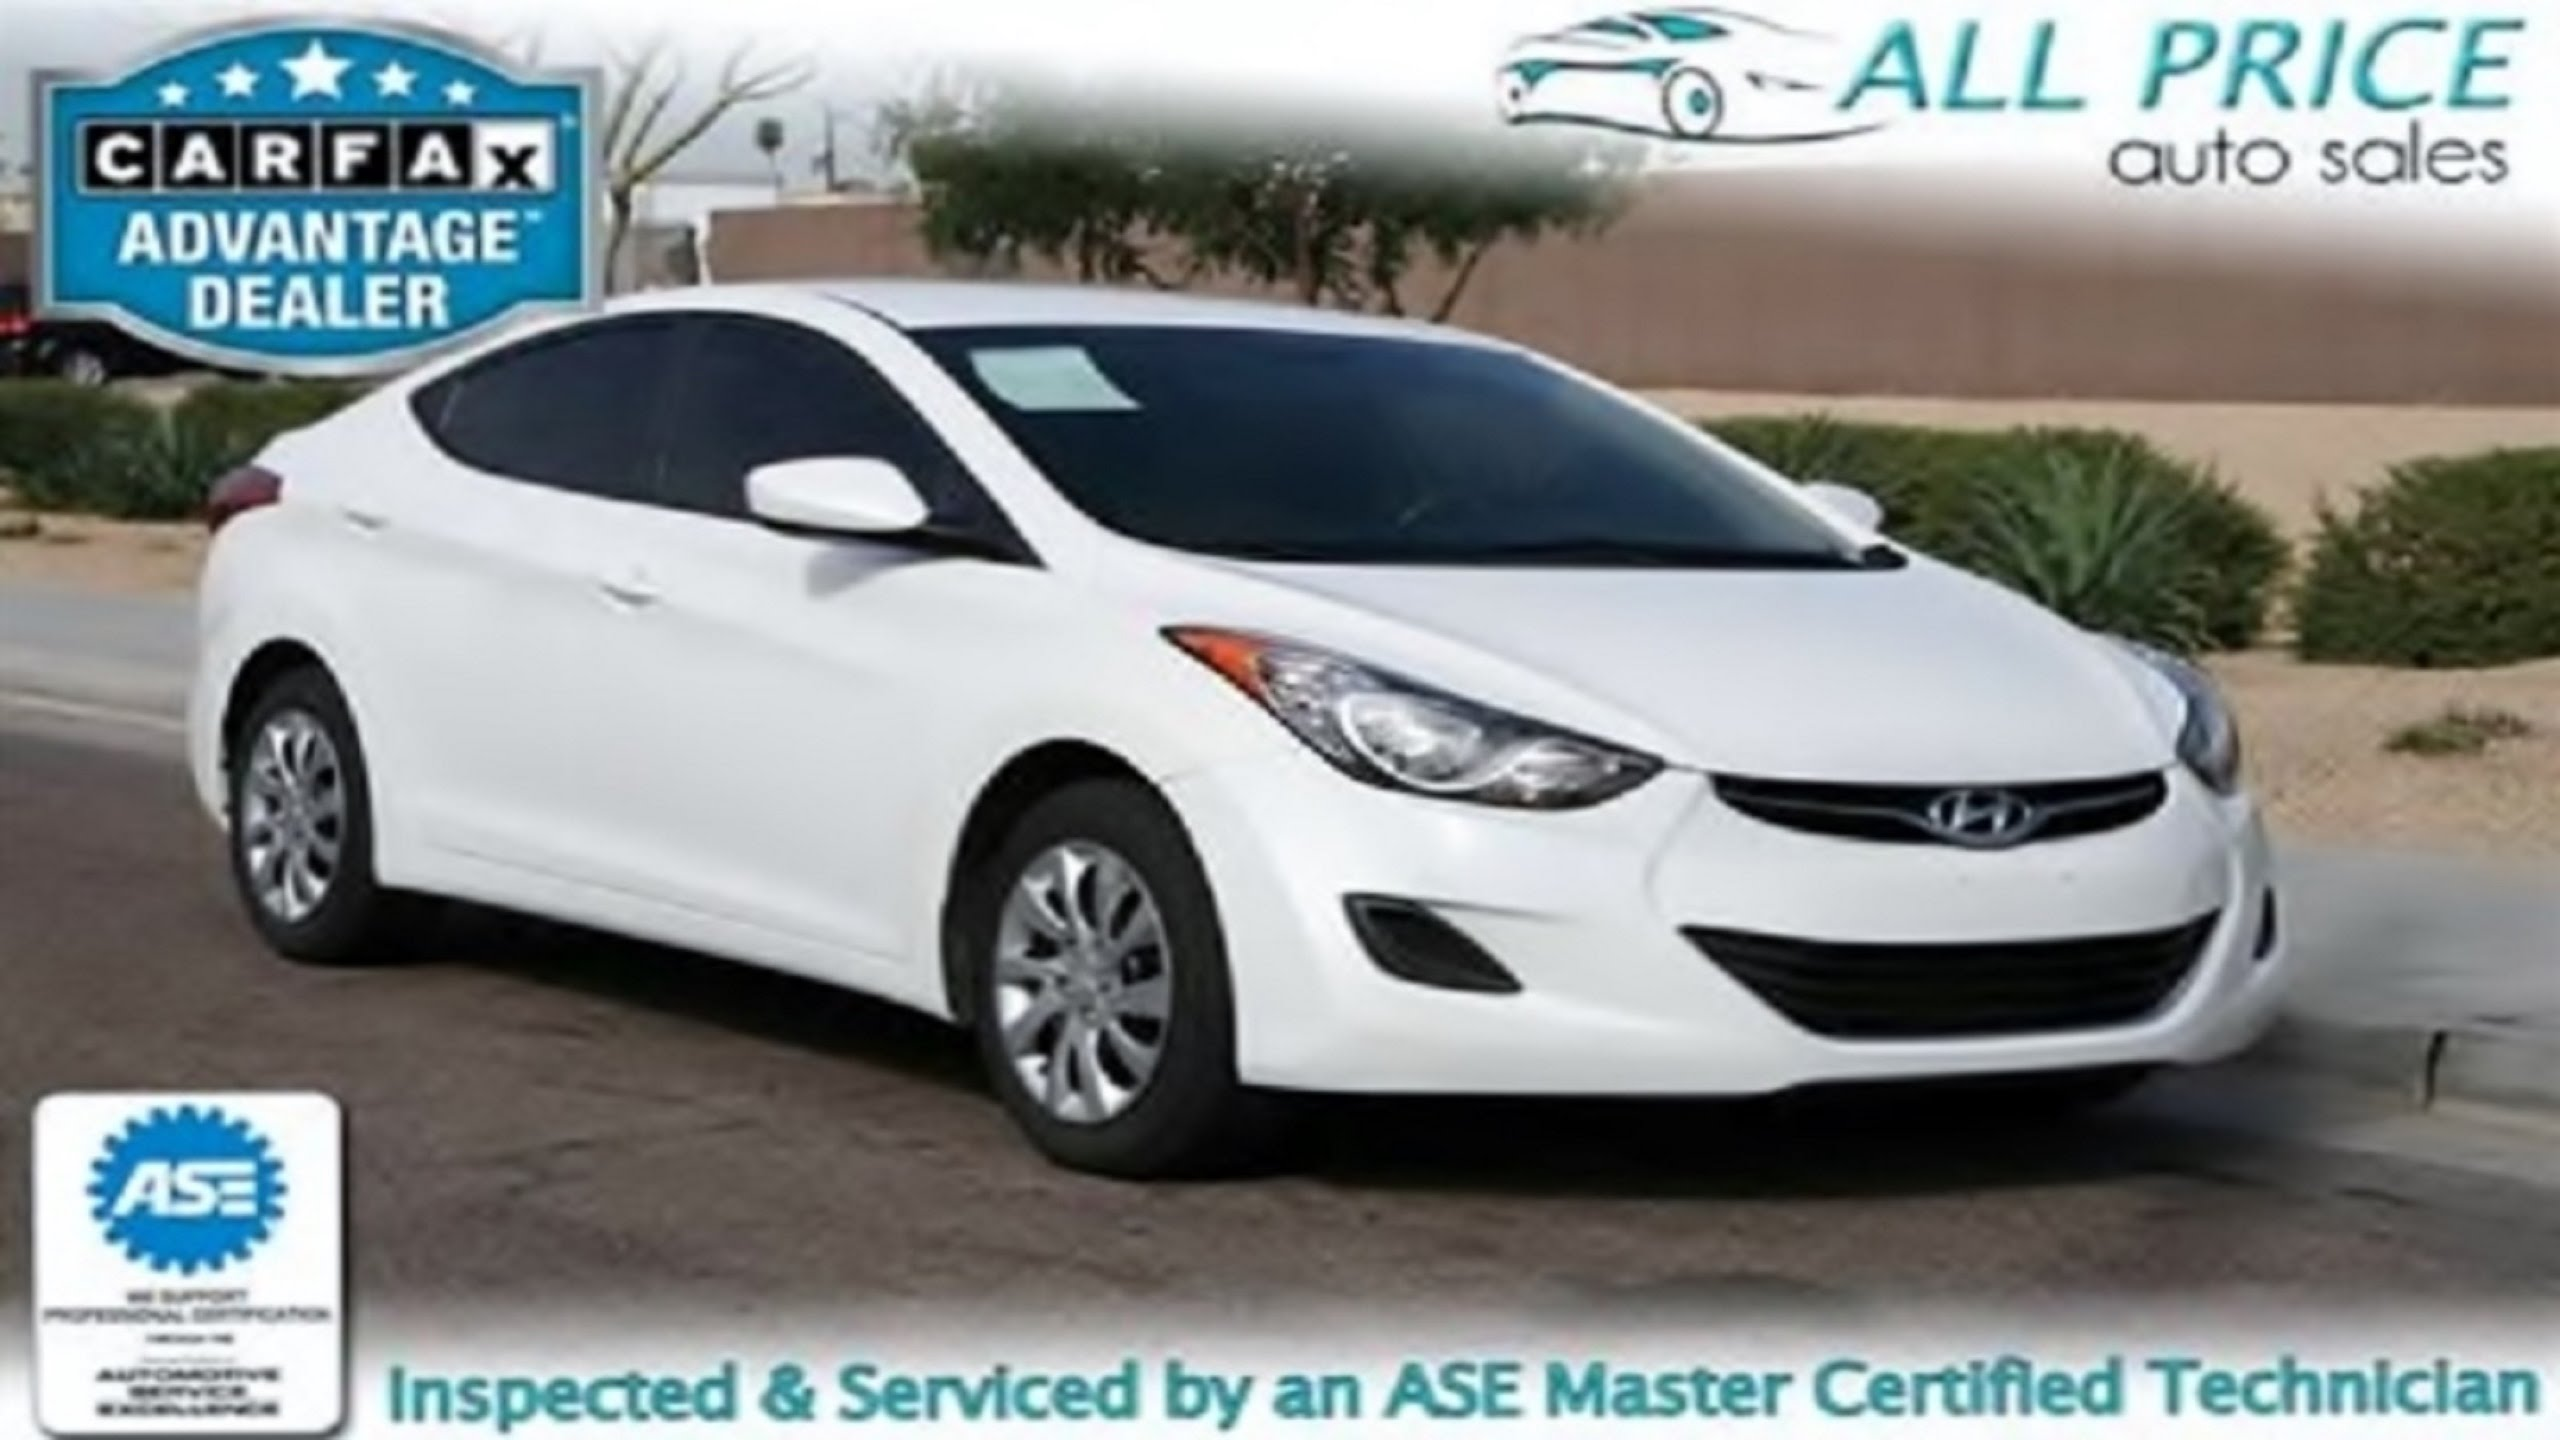 used cars for sale in phoenix az 2012 hyundai elantra all price auto sales llc youtube